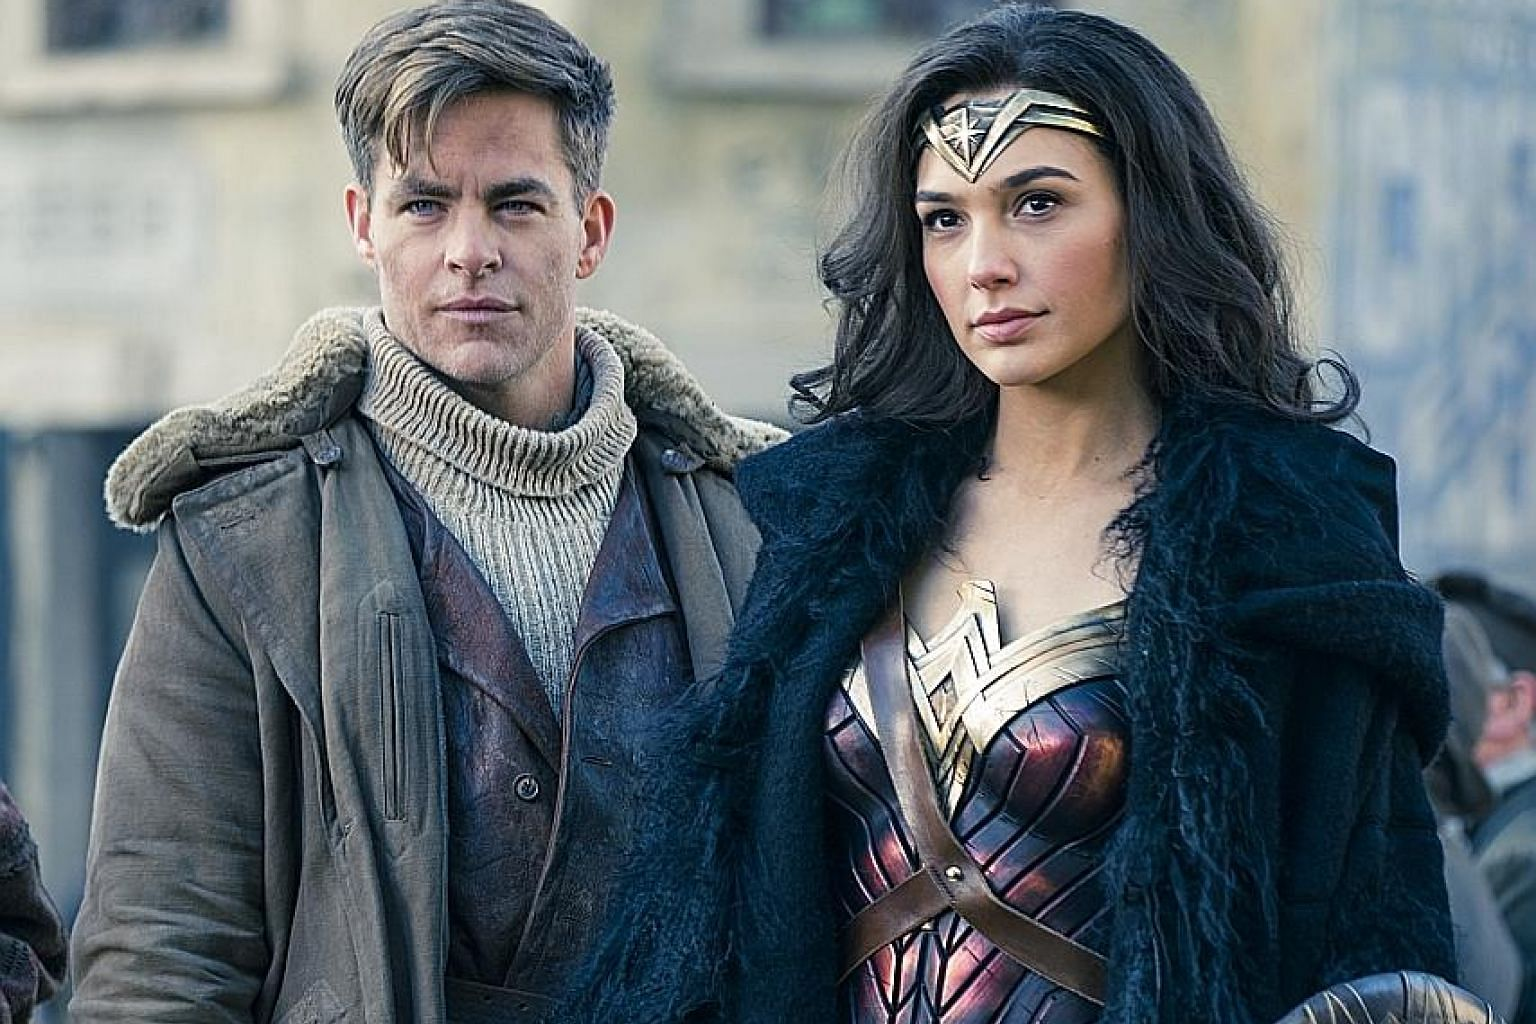 Chris Pine plays an American spy who inadvertently leads the German army to an island occupied by an all-female tribe of Amazon warriors, including Wonder Woman, played by Gal Gadot.